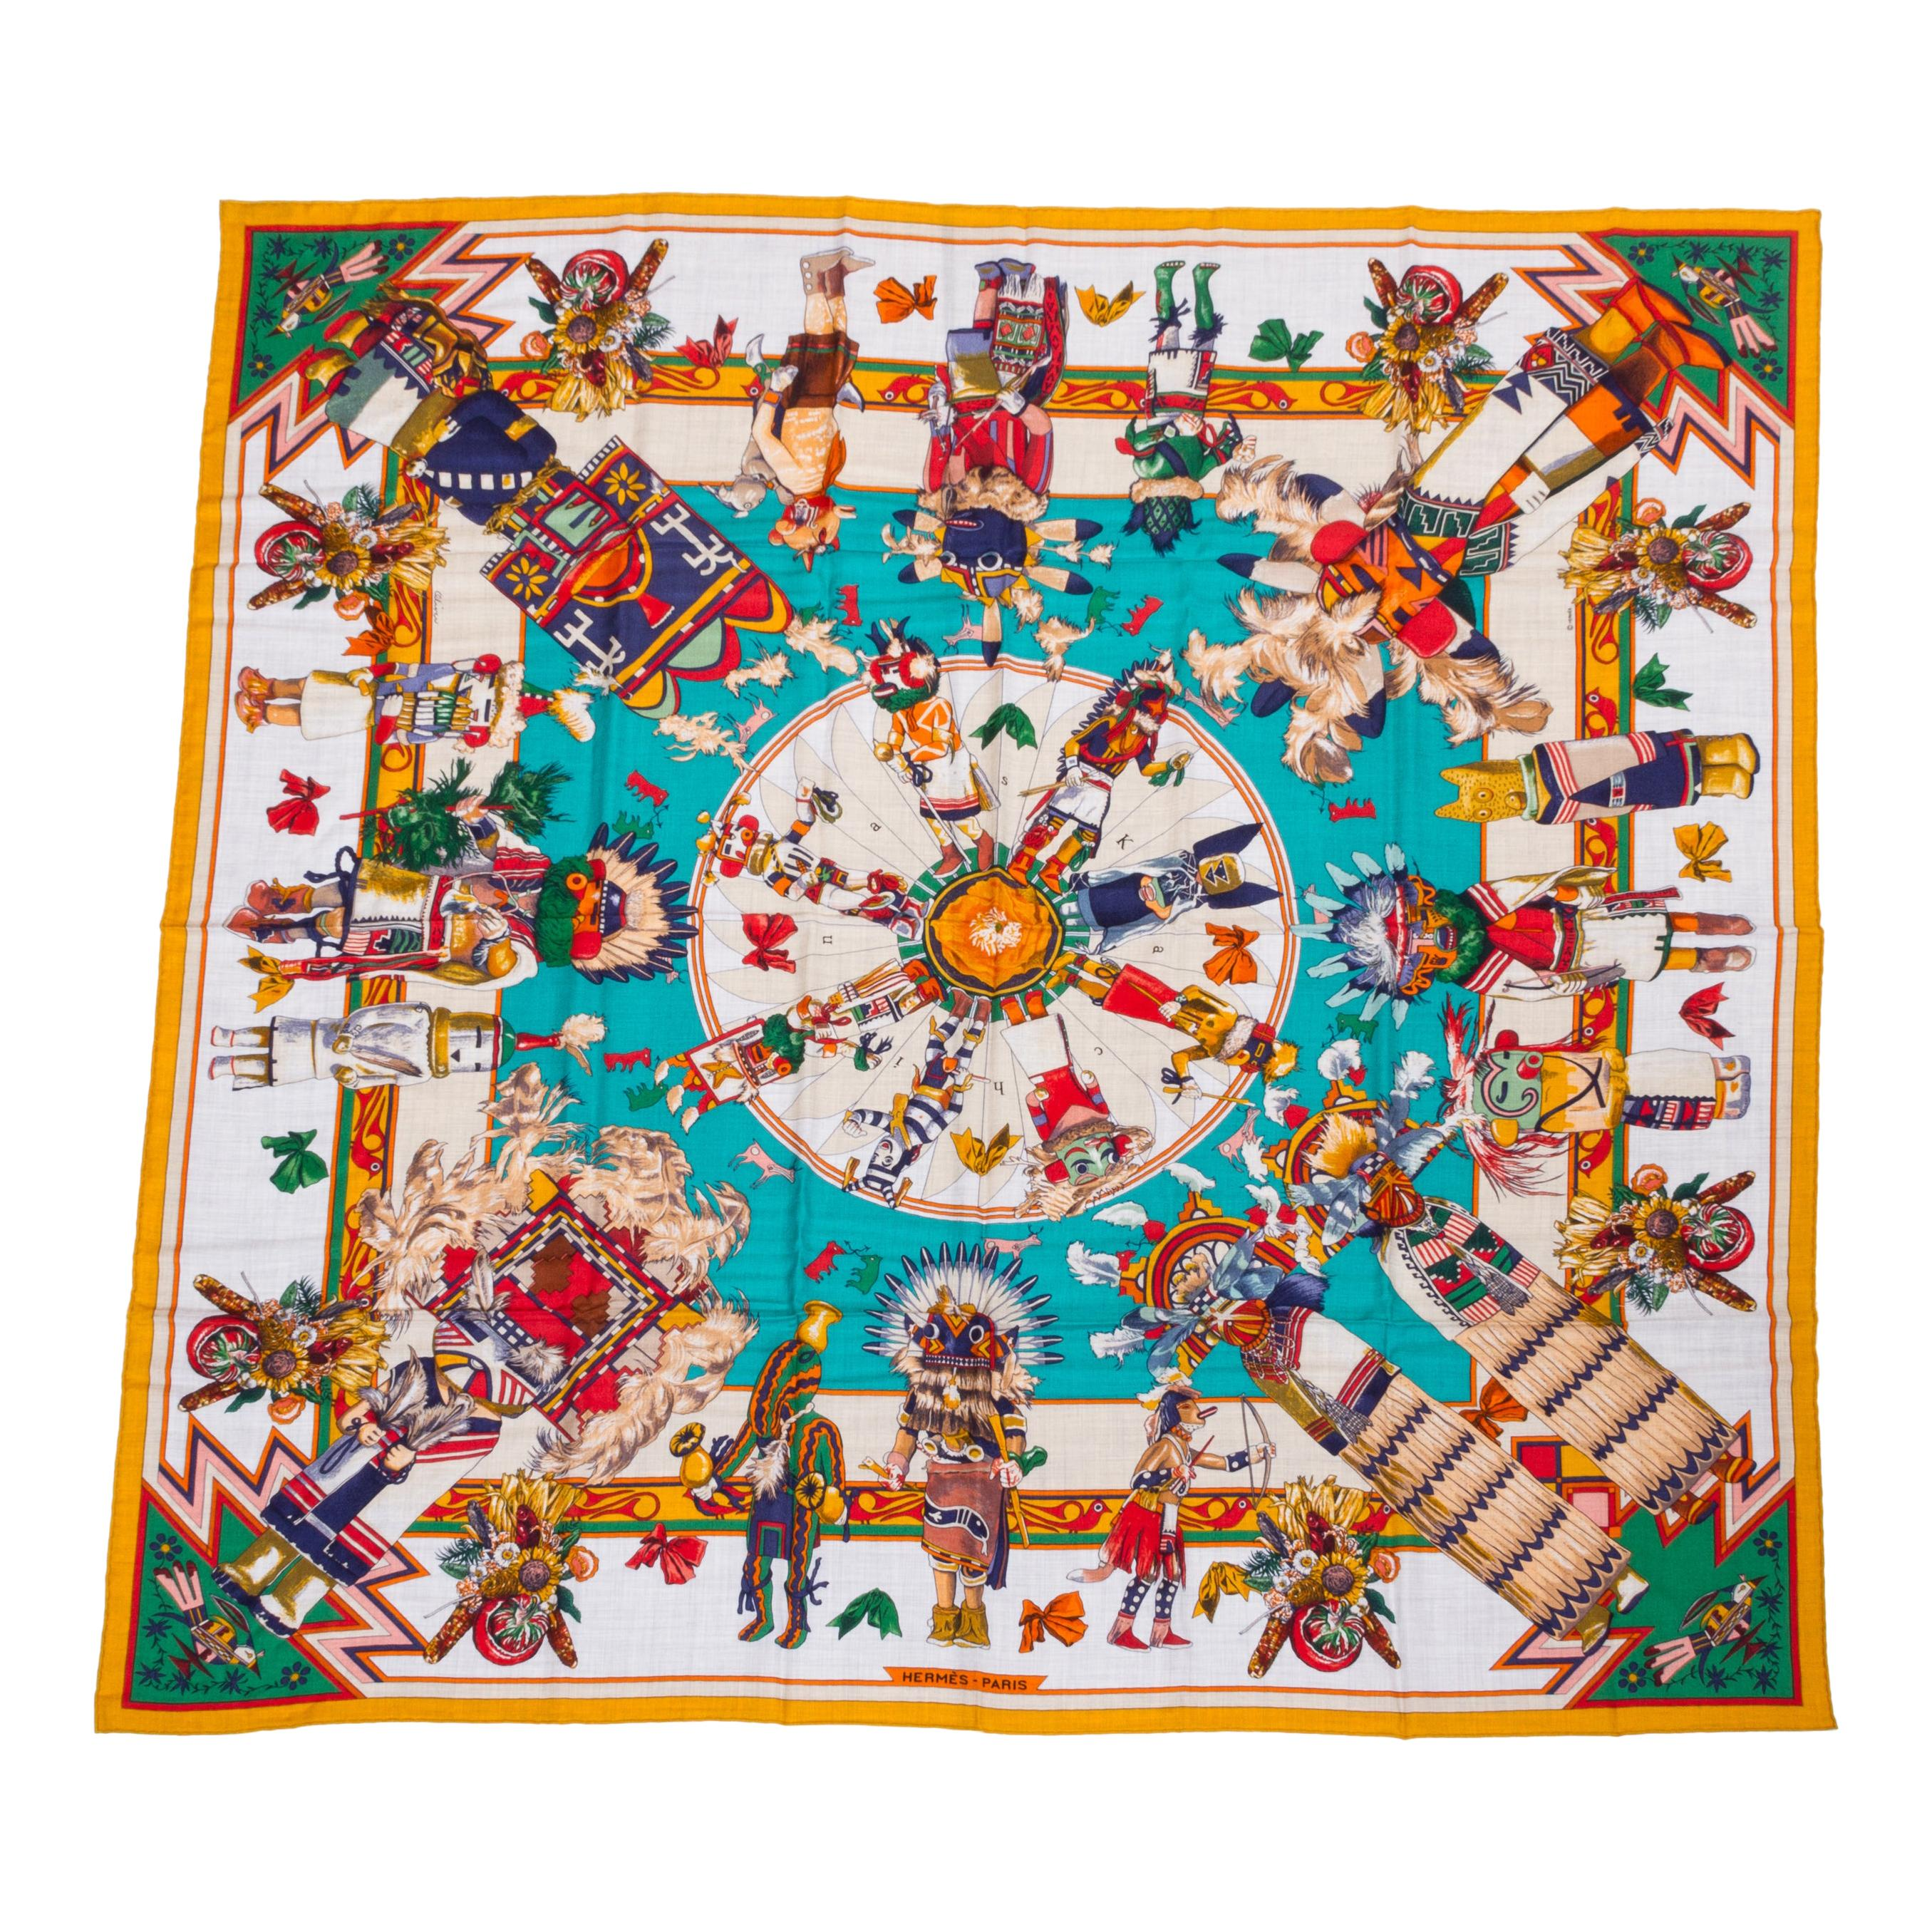 "New Hermes Teal Cashmere 55"" Kachinas Shawl Scarf by Kermit Oliver in Box"